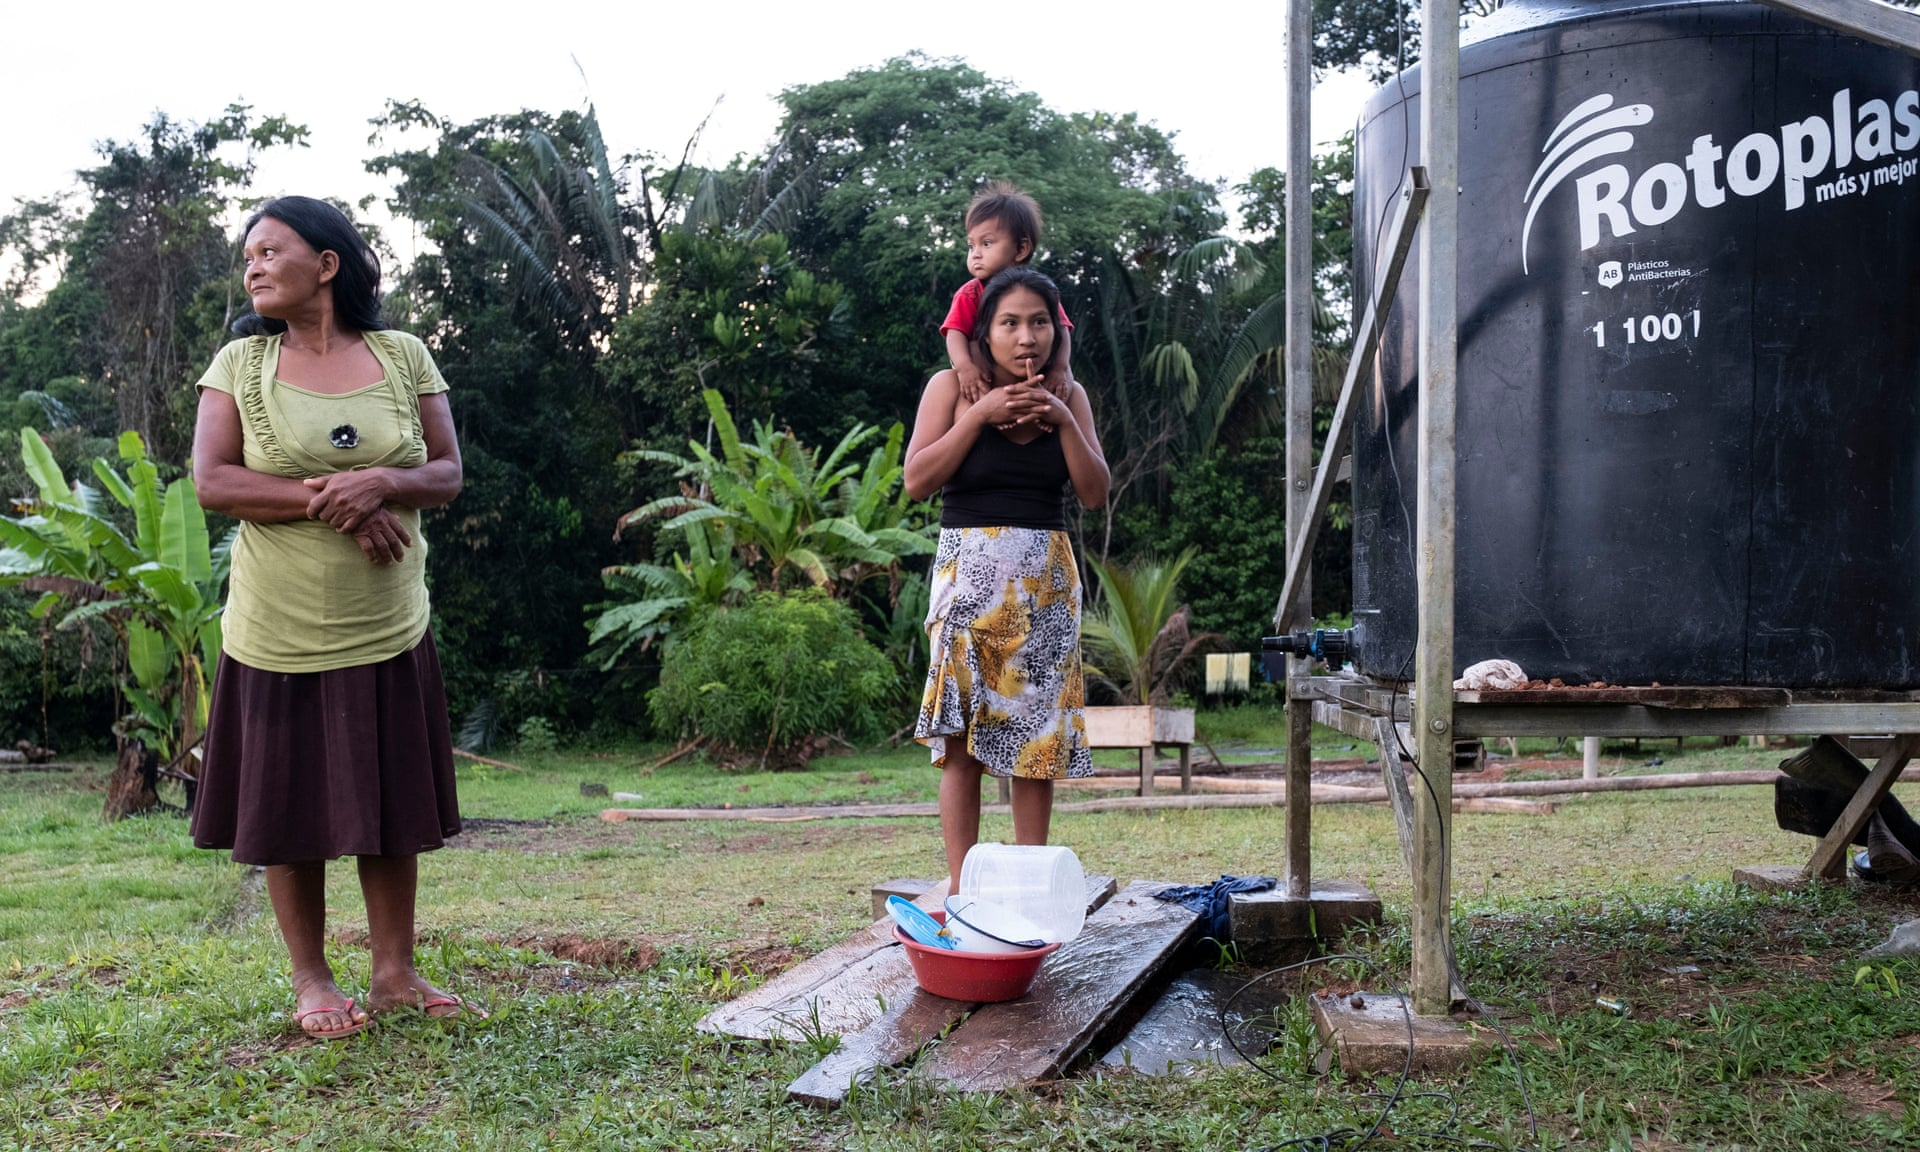 People use water from the tanks for drinking, cooking and washing up. Photograph: Ceibo Alliance